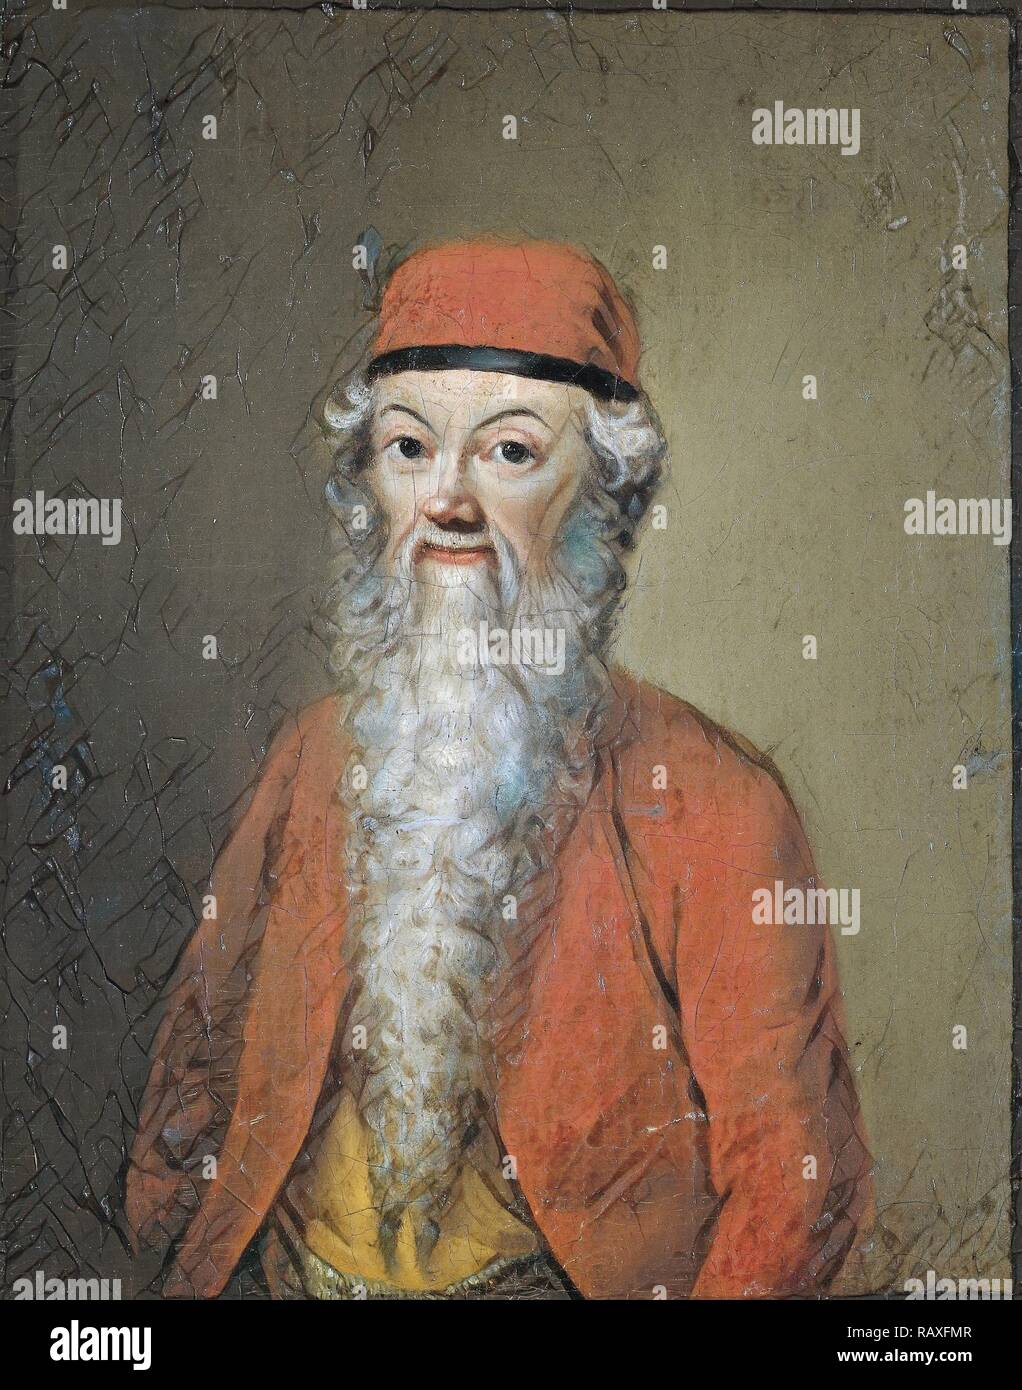 Portrait of Jean-Étienne Liotard at approximately 54 years of age (Self Portrait in Turkish Costume), Anonymous, c reimagined - Stock Image